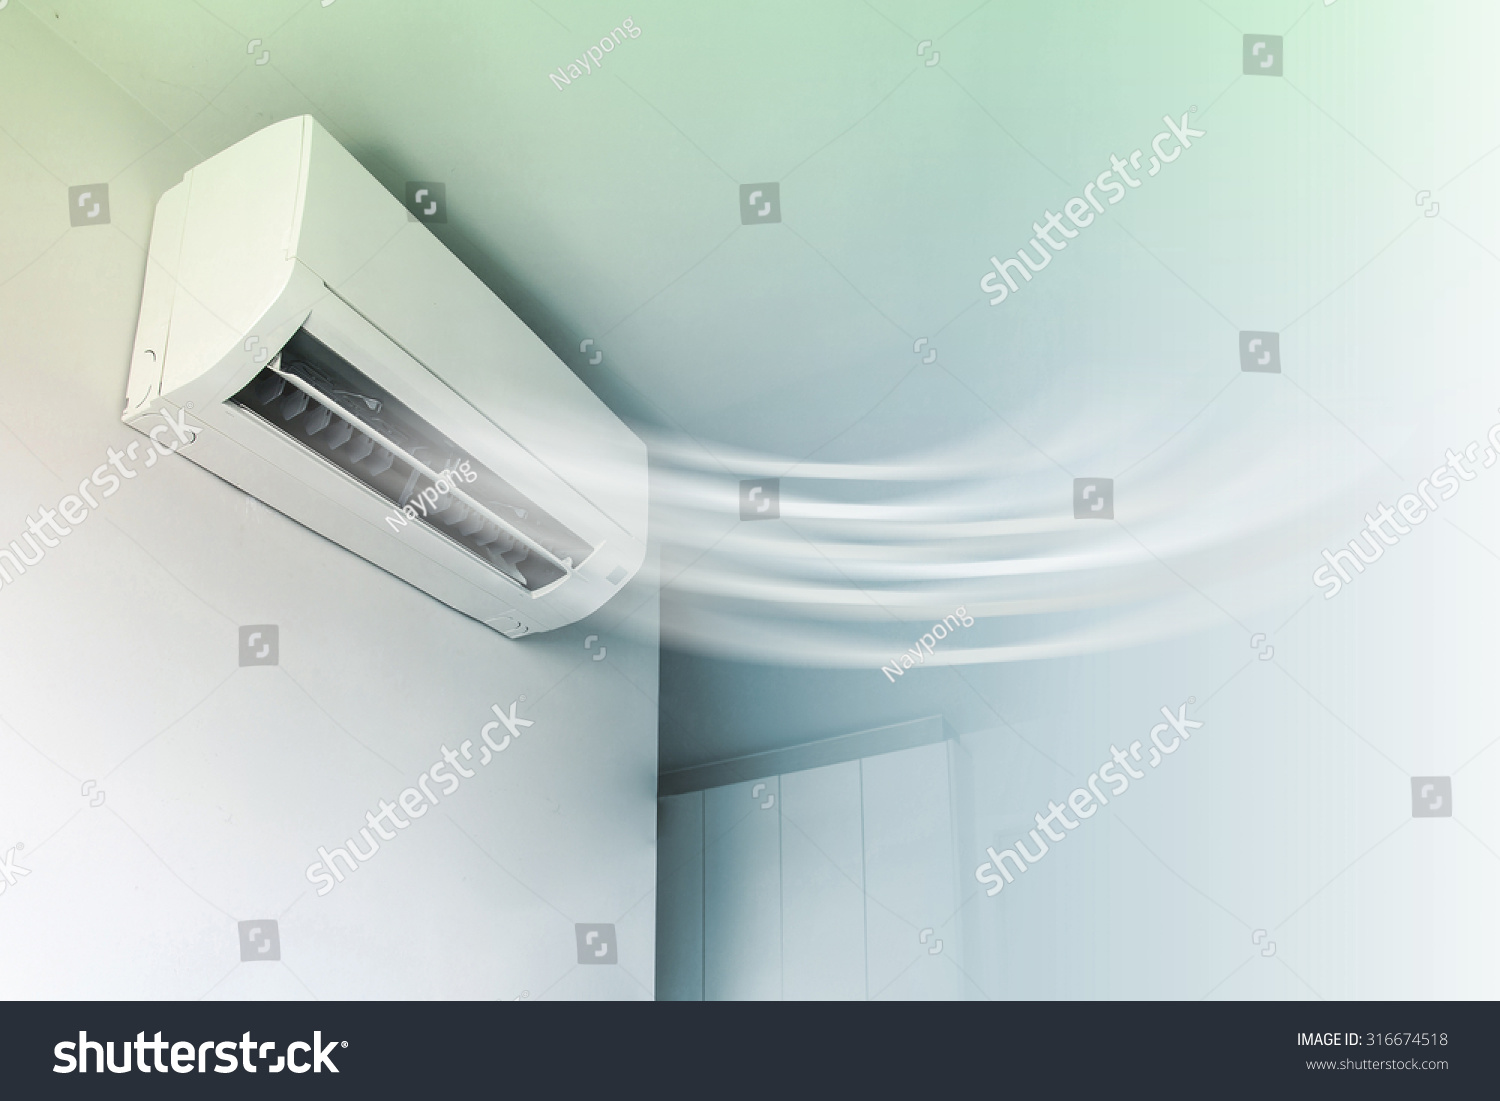 Air Conditioner On Wall Background Stock Photo 316674518  #647952